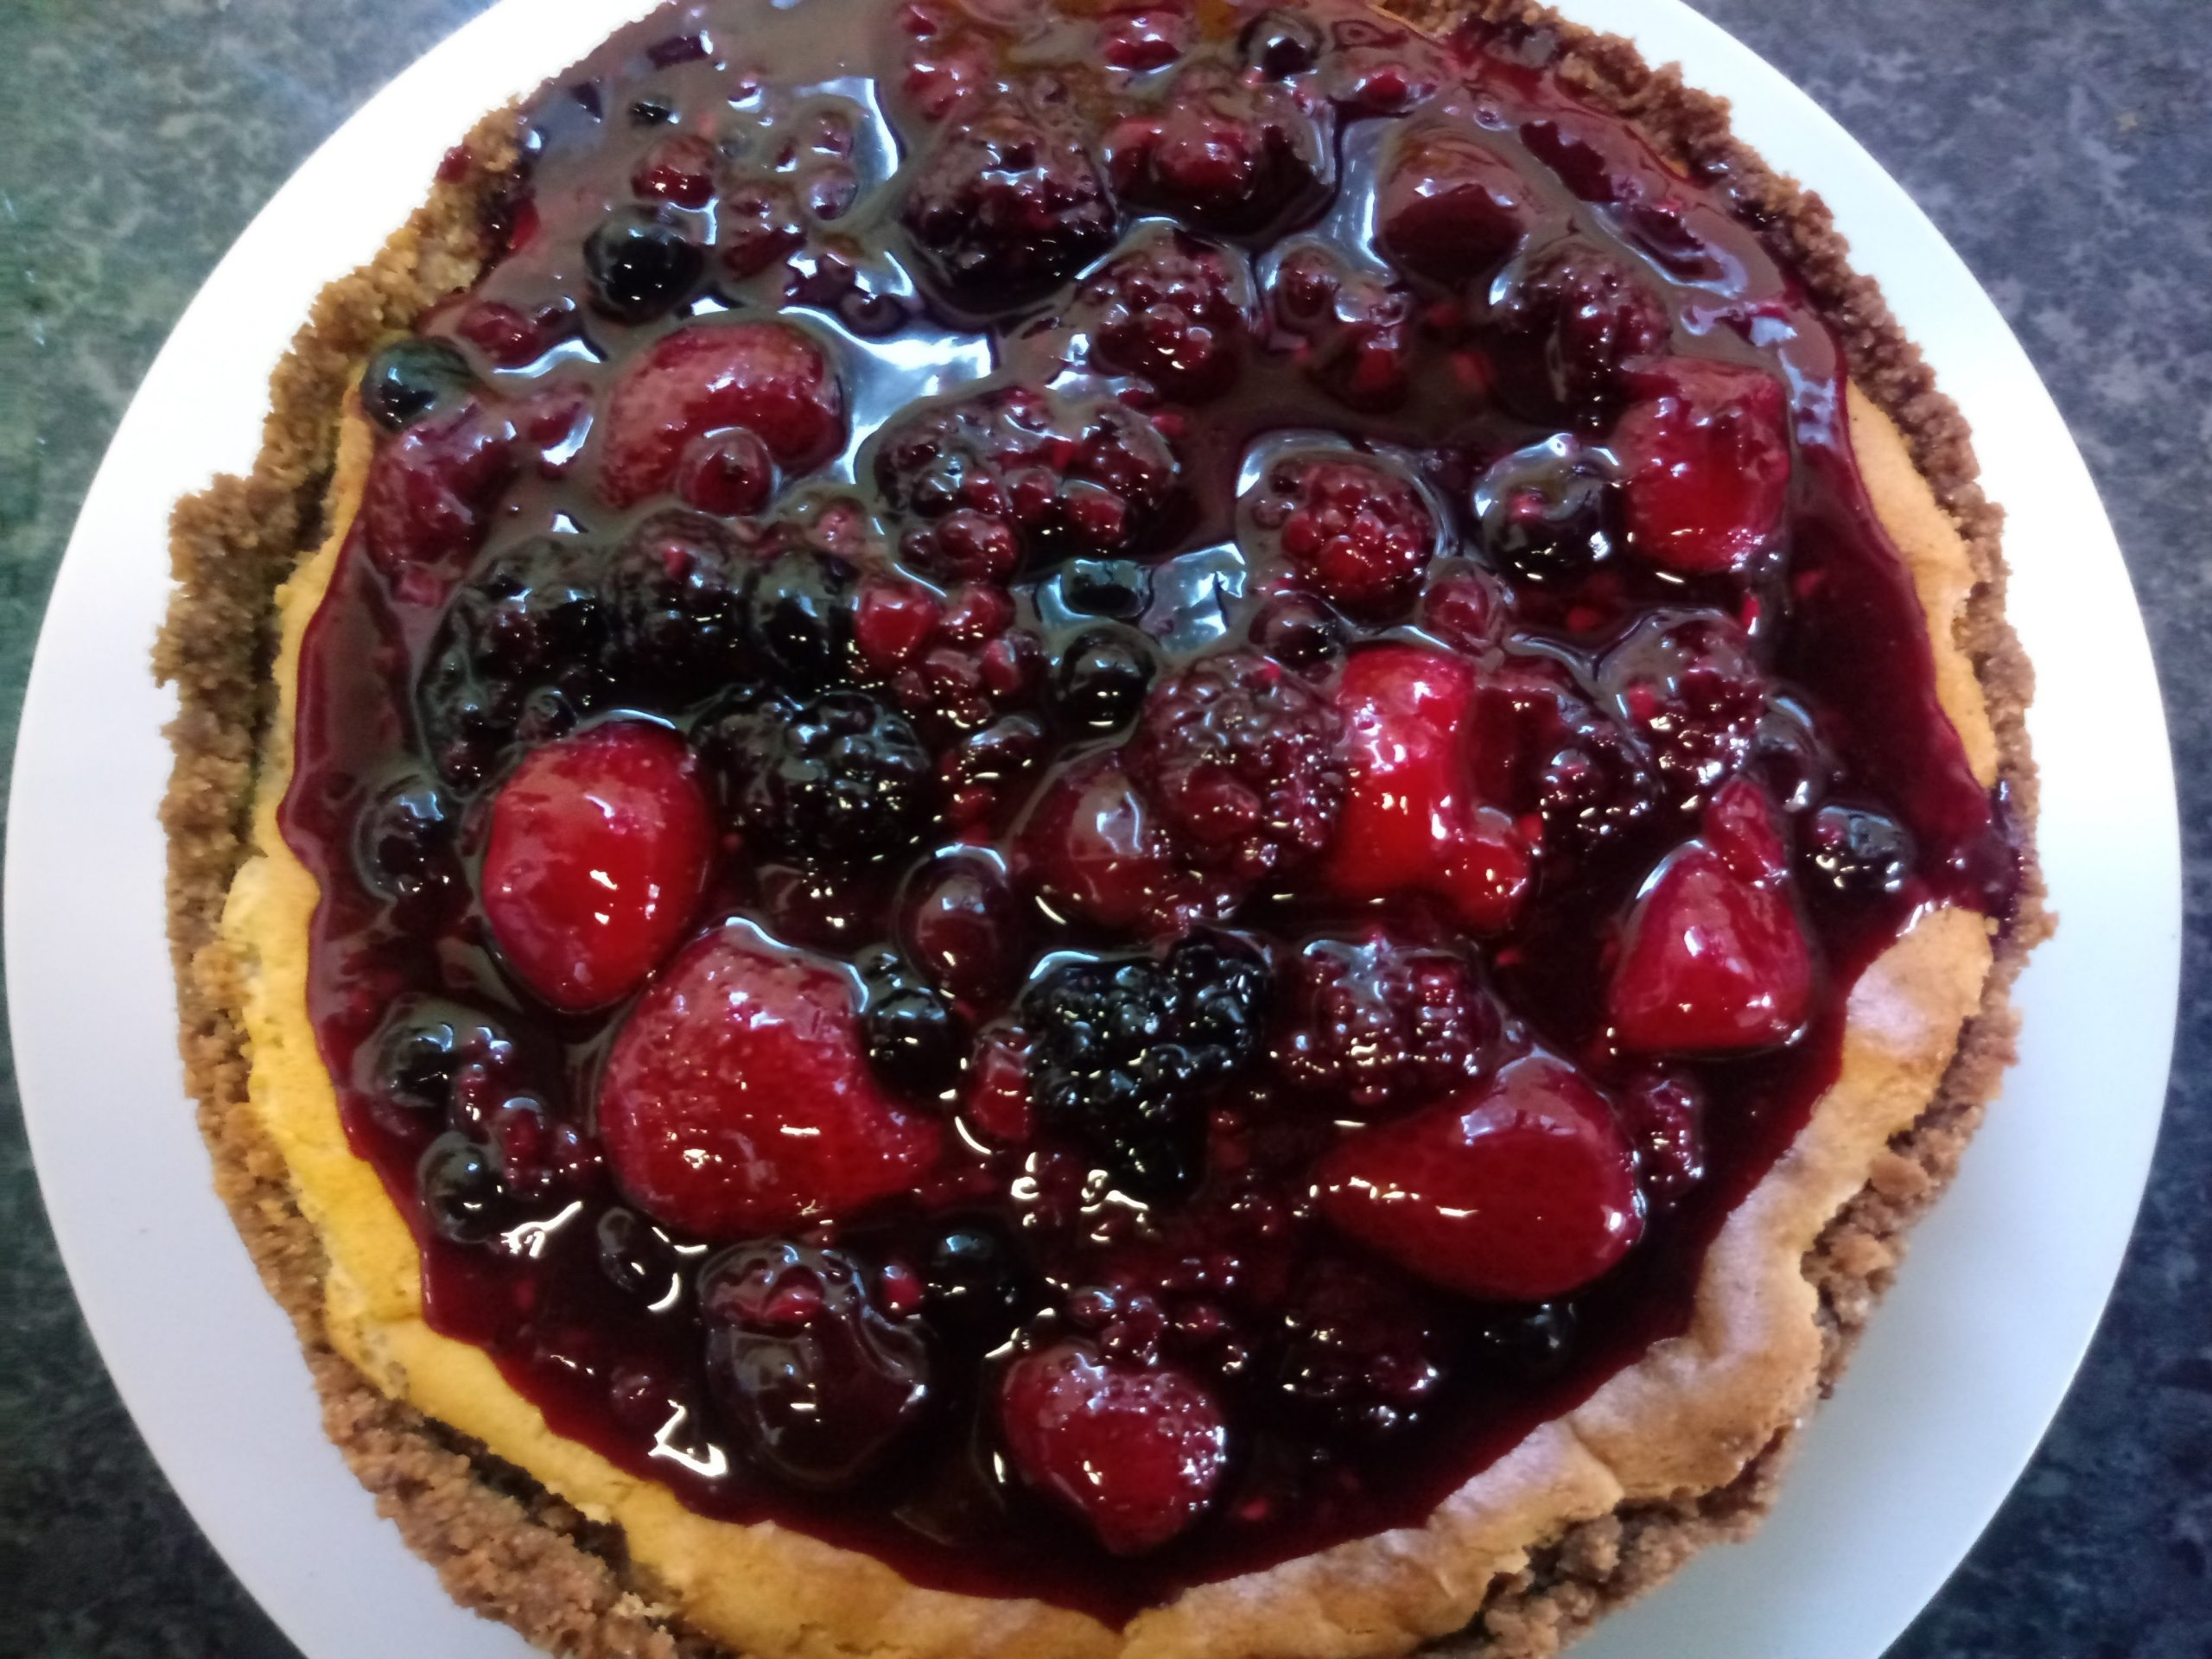 A cheescake made with a biscuit base and a berry compote on top